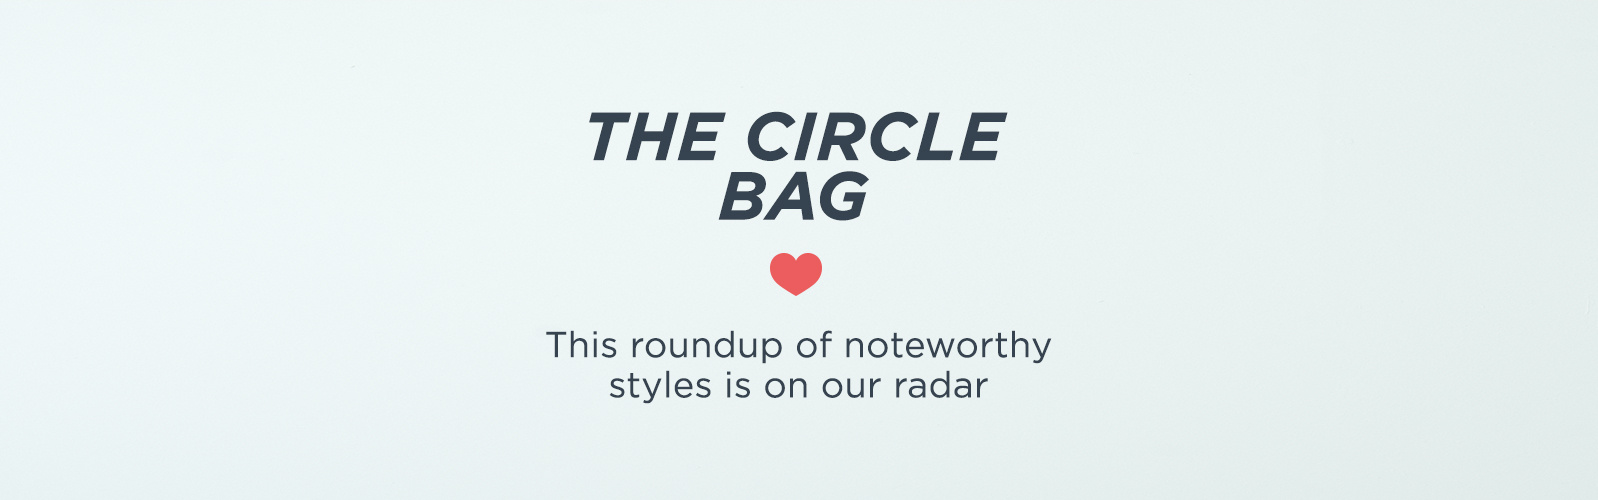 The Essential Tote --  Make this bag your new go-anywhere companion